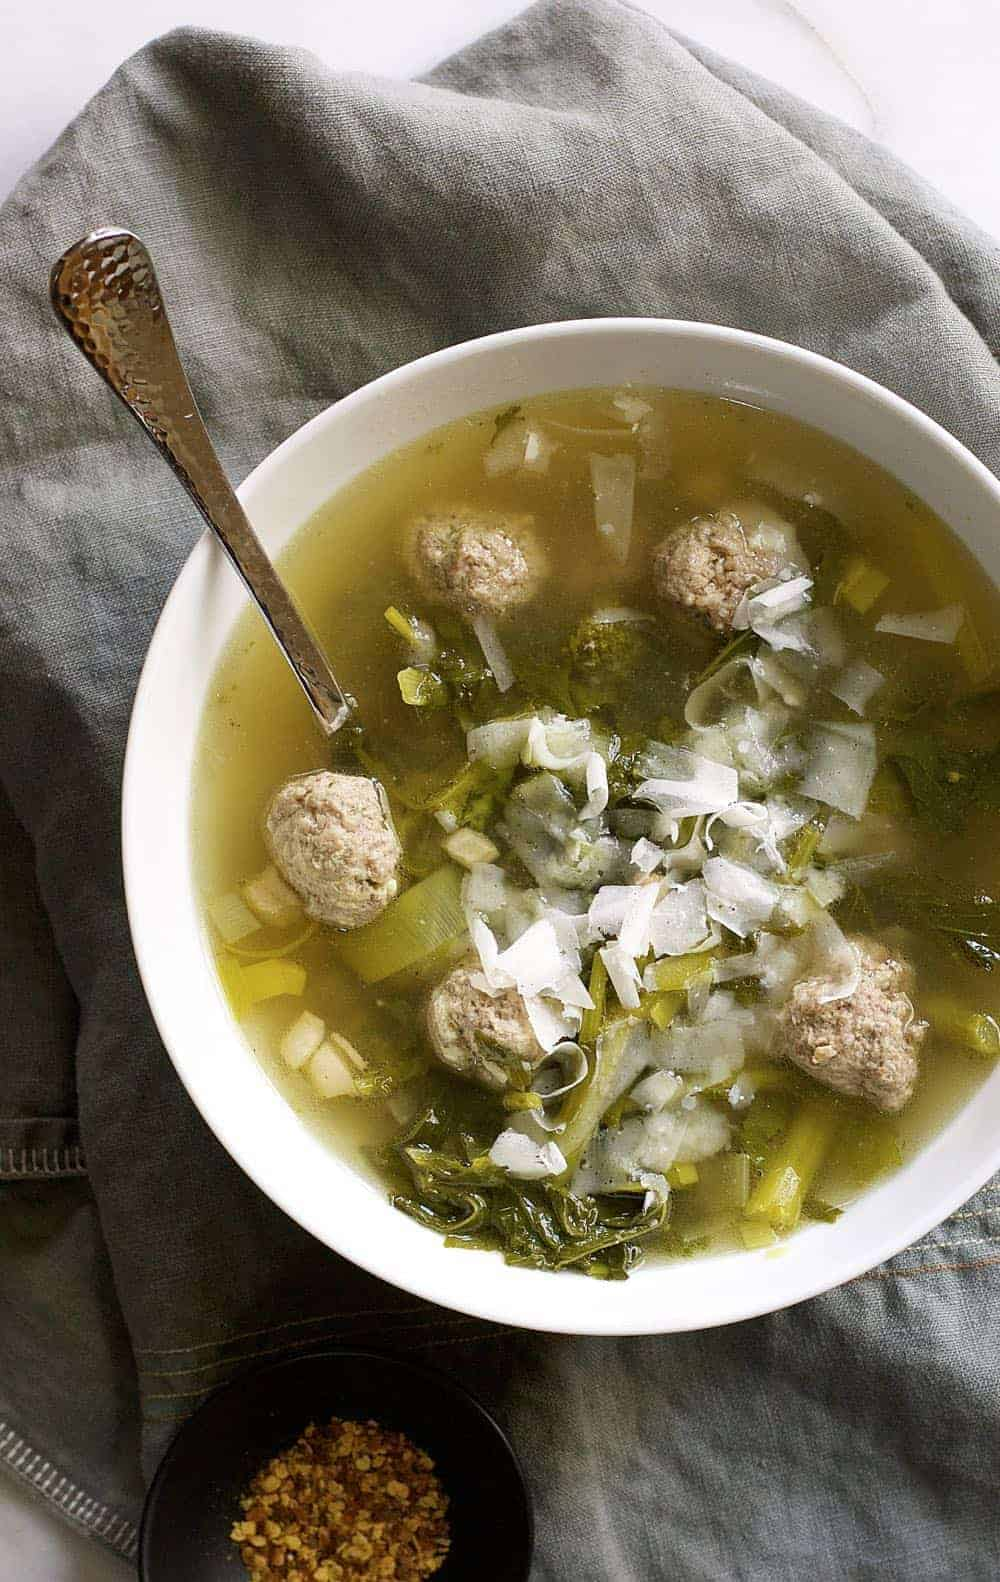 Why I love this easy Italian Wedding Soup recipe: it has a delicate and flavorful broth, but is entirely hearty because it's loaded with meatballs! It's a crowd-pleasing meal that you can whip up in about half an hour.